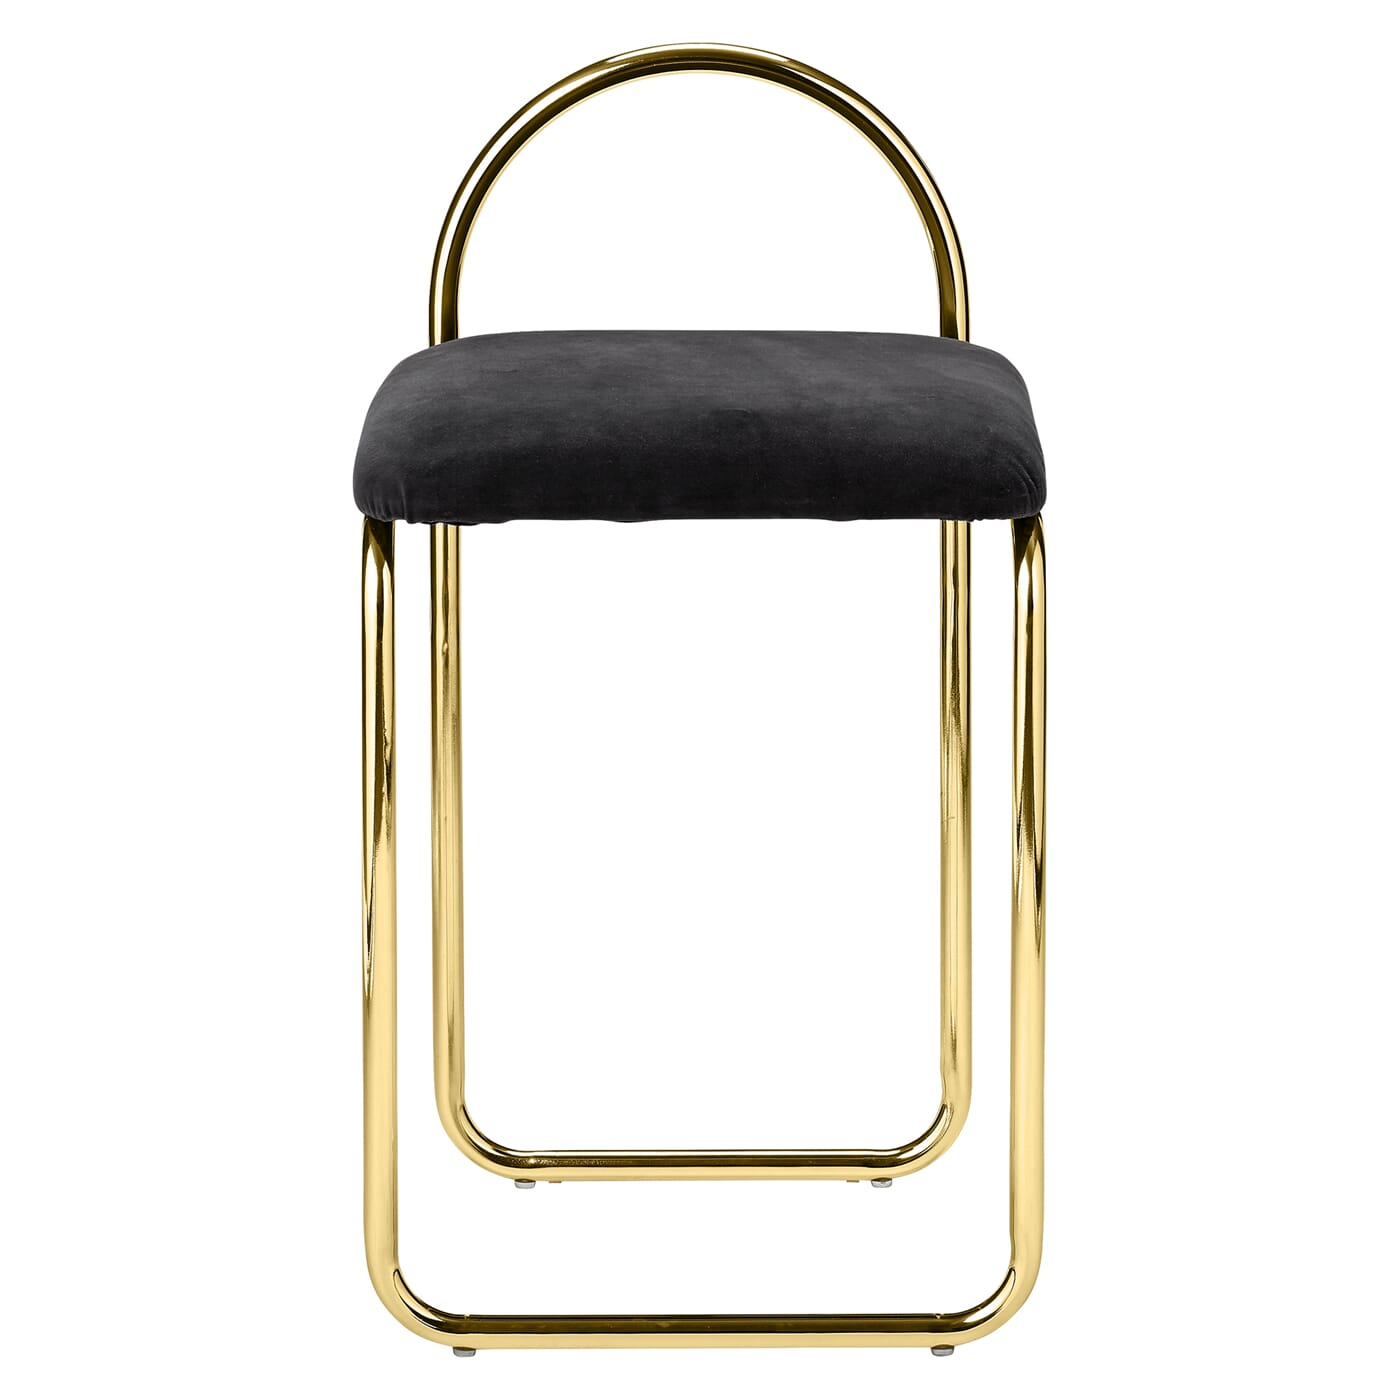 Bilde av Angui Chair Antrasite/gold